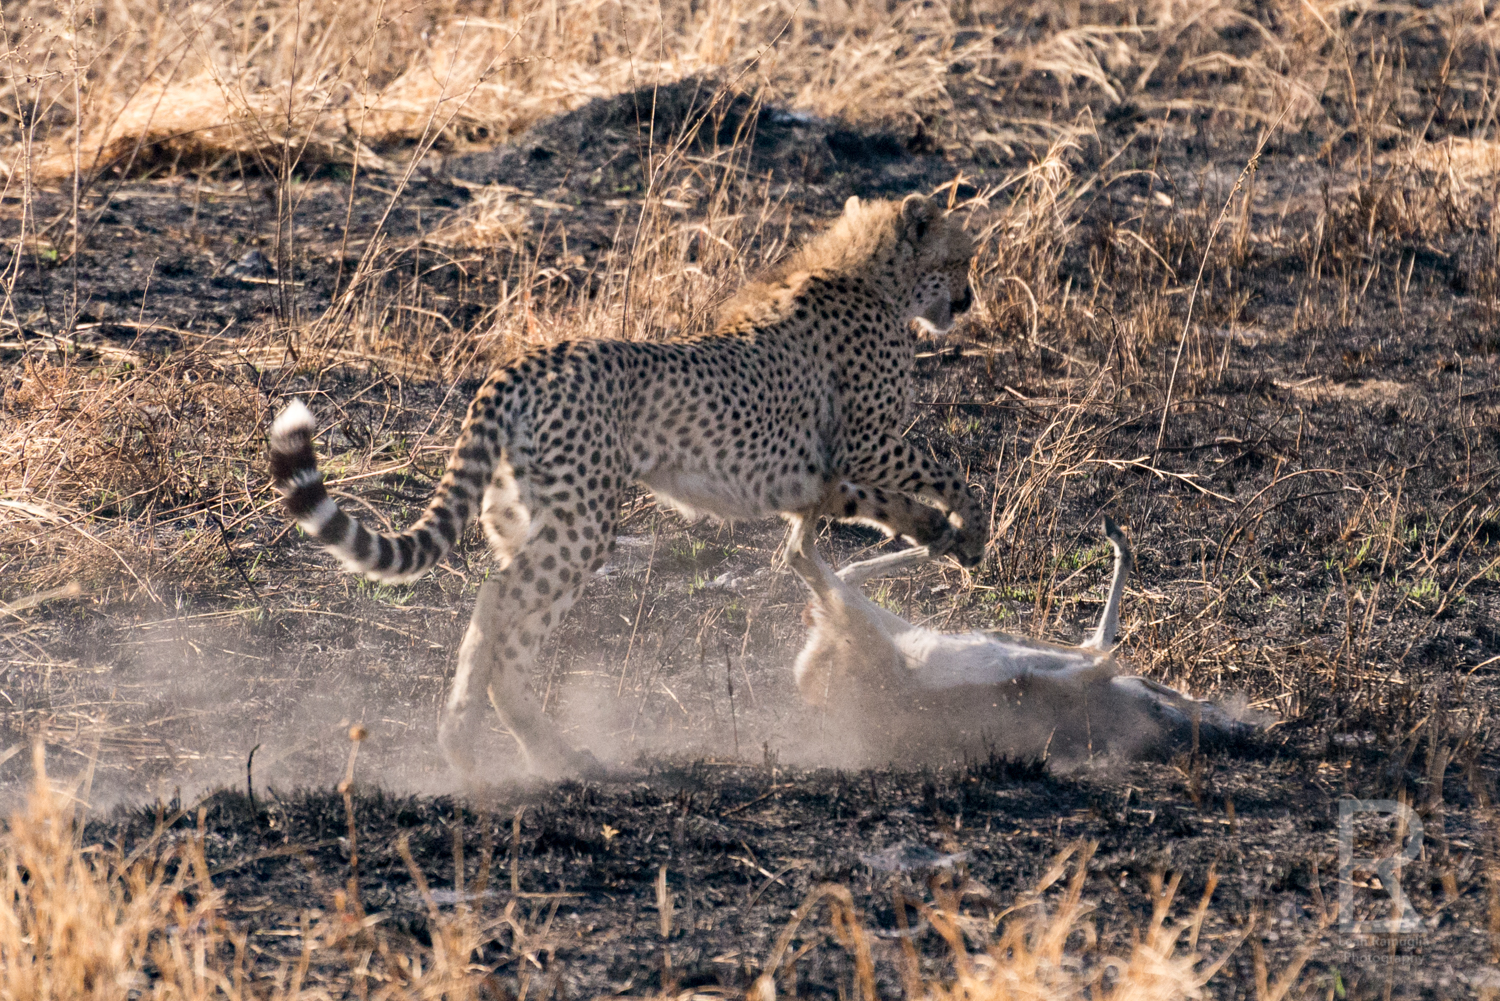 - I wouldn't have believed this if I didn't witness it with my own eyes. It was early morning in the Serengeti and a heard of Thomson's Gazelle ran suddenly - they were being hunted. Then, one was caught, a baby gazelle.